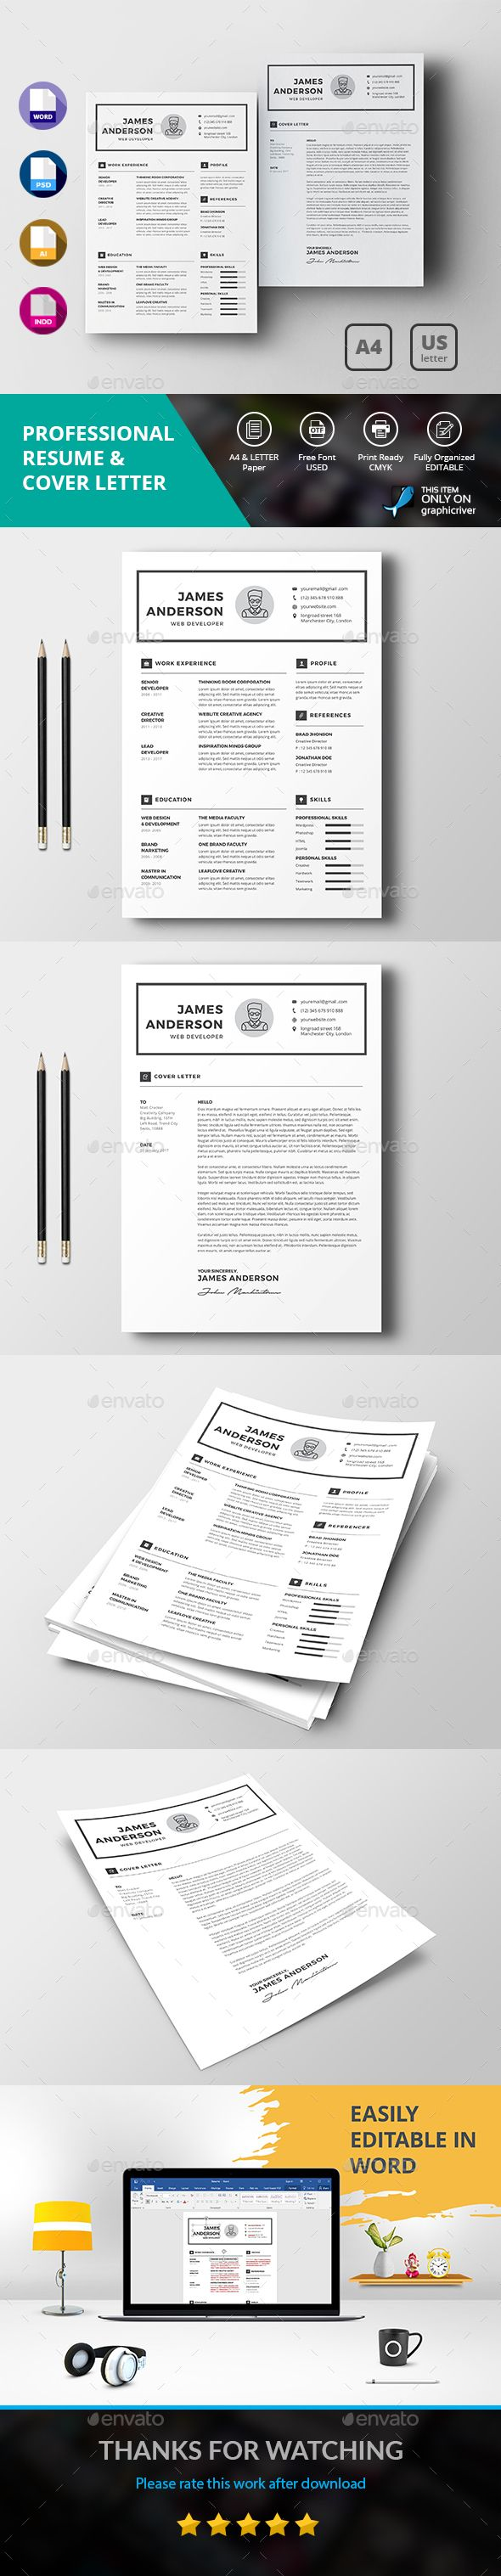 cover letter resume paper best ideas about professional cover letter template professional resume cover letter